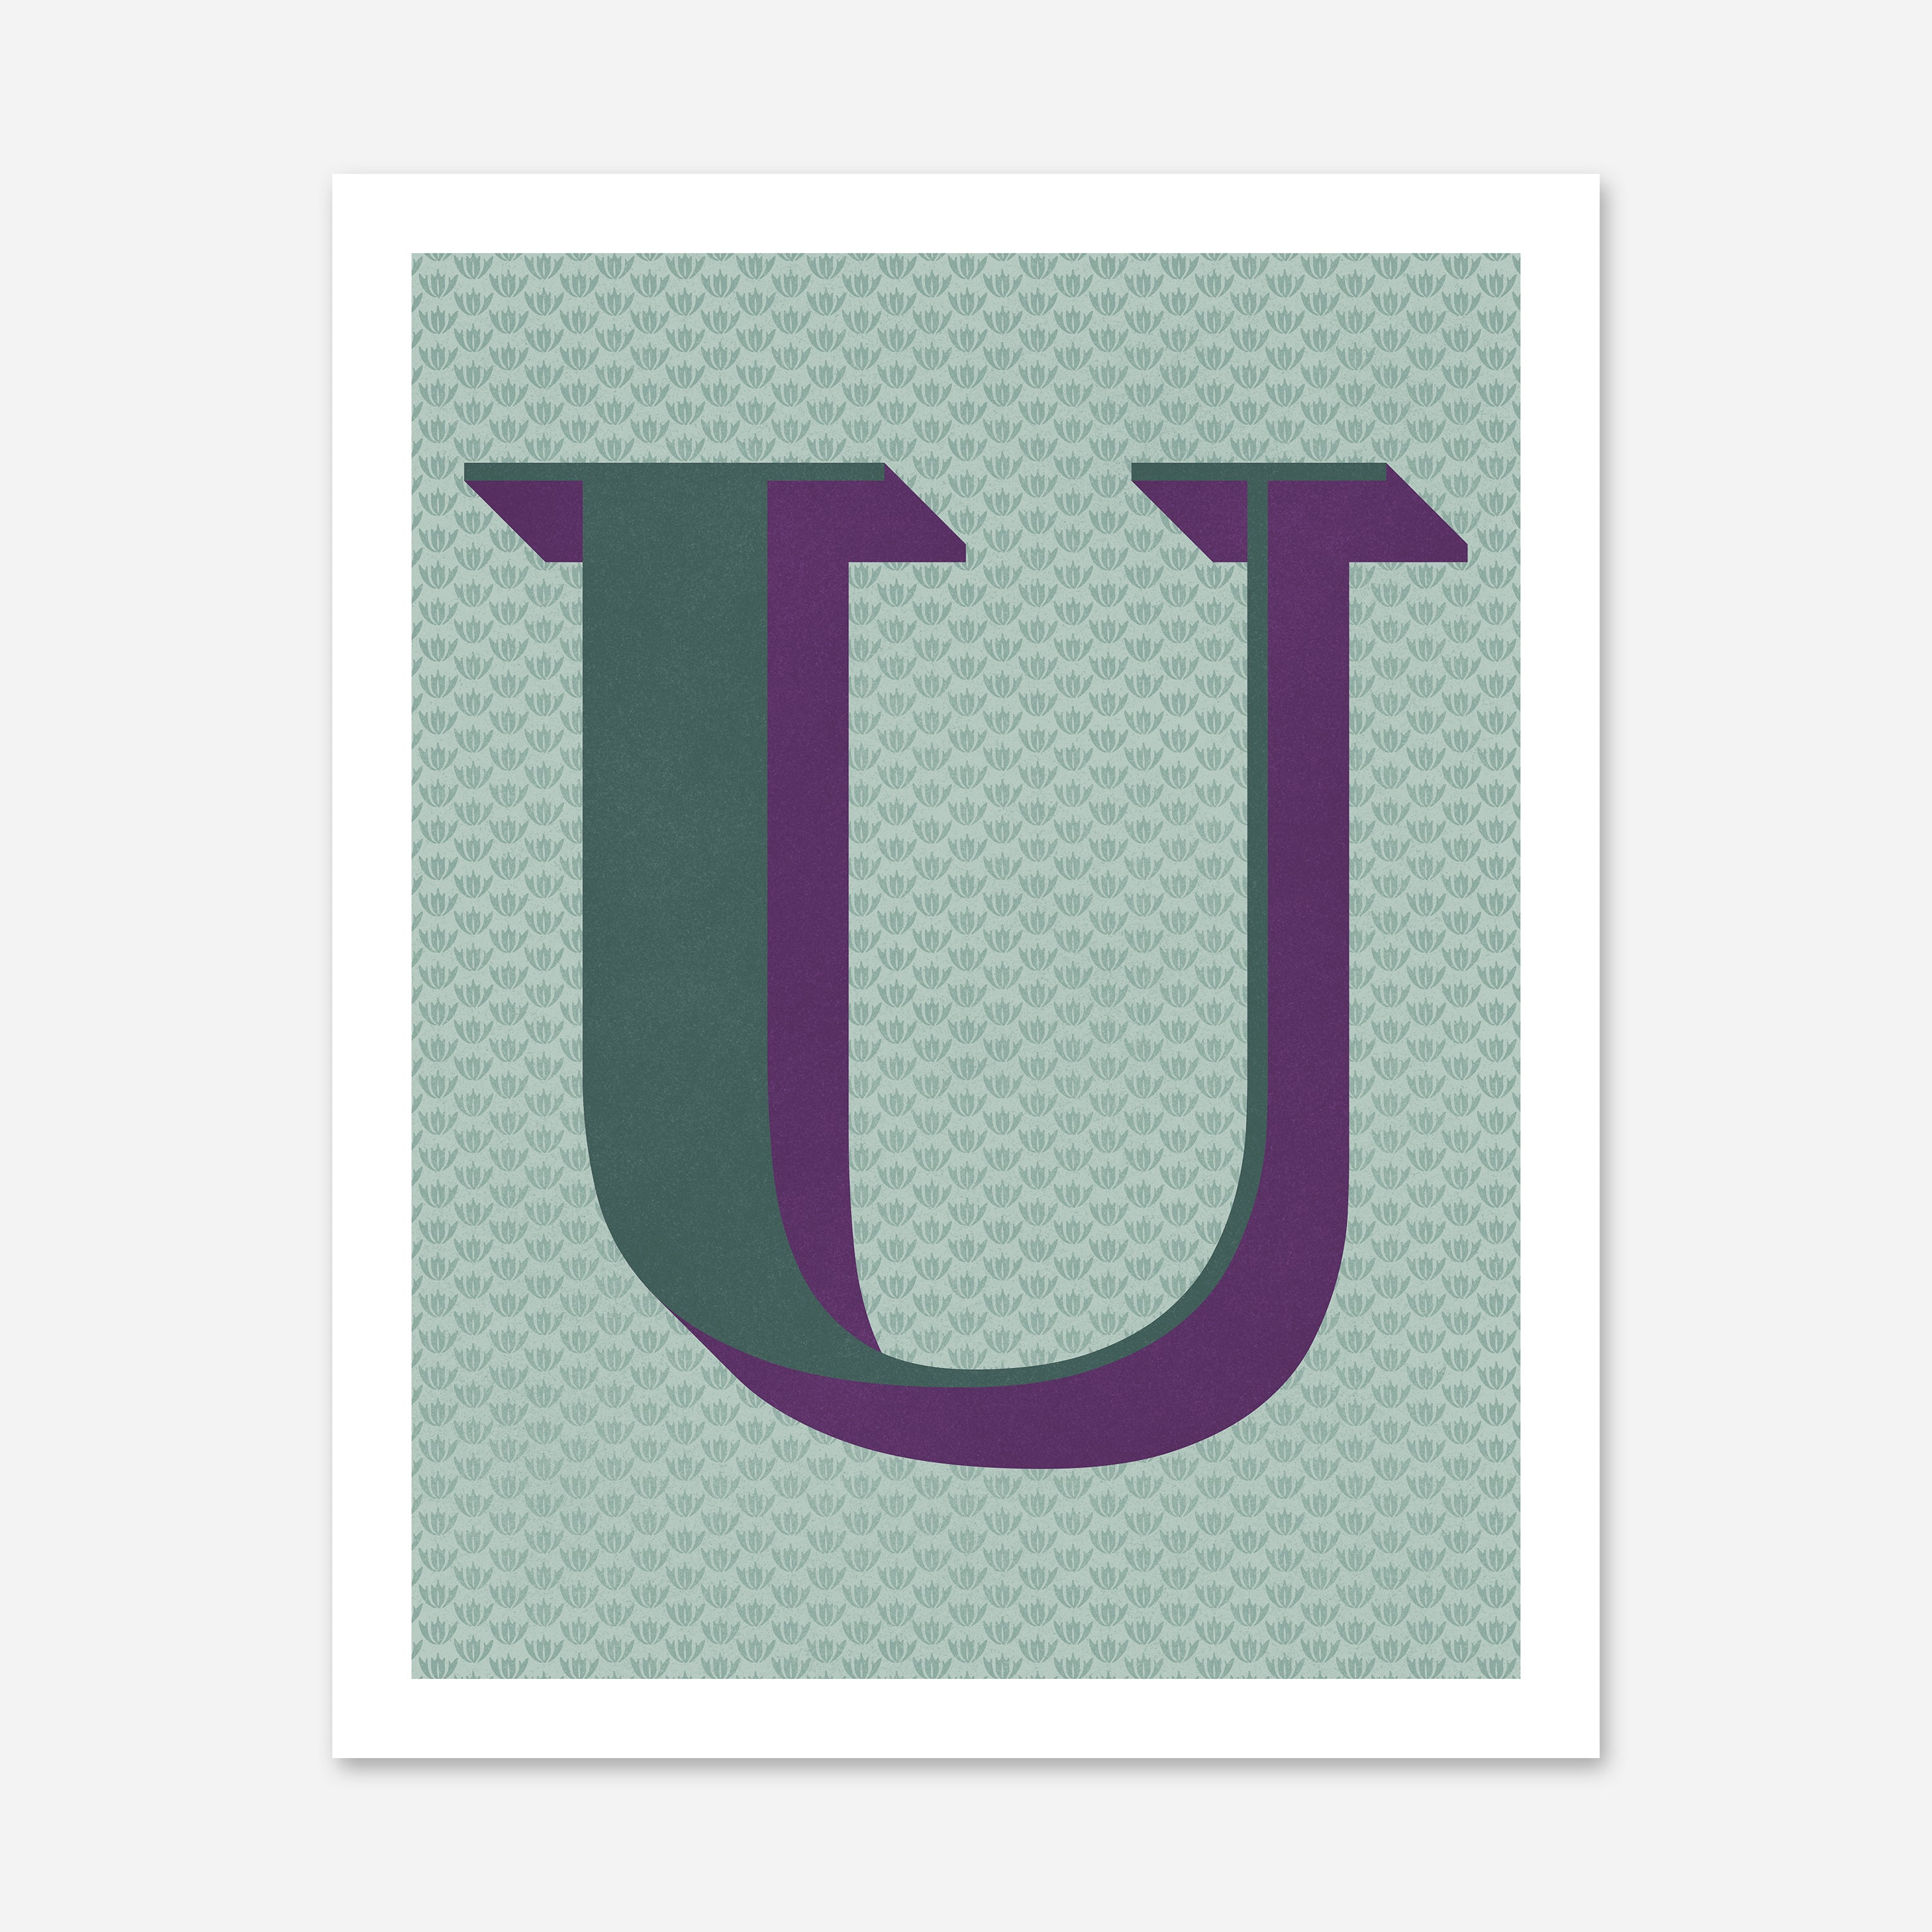 The Letter U - No. 1